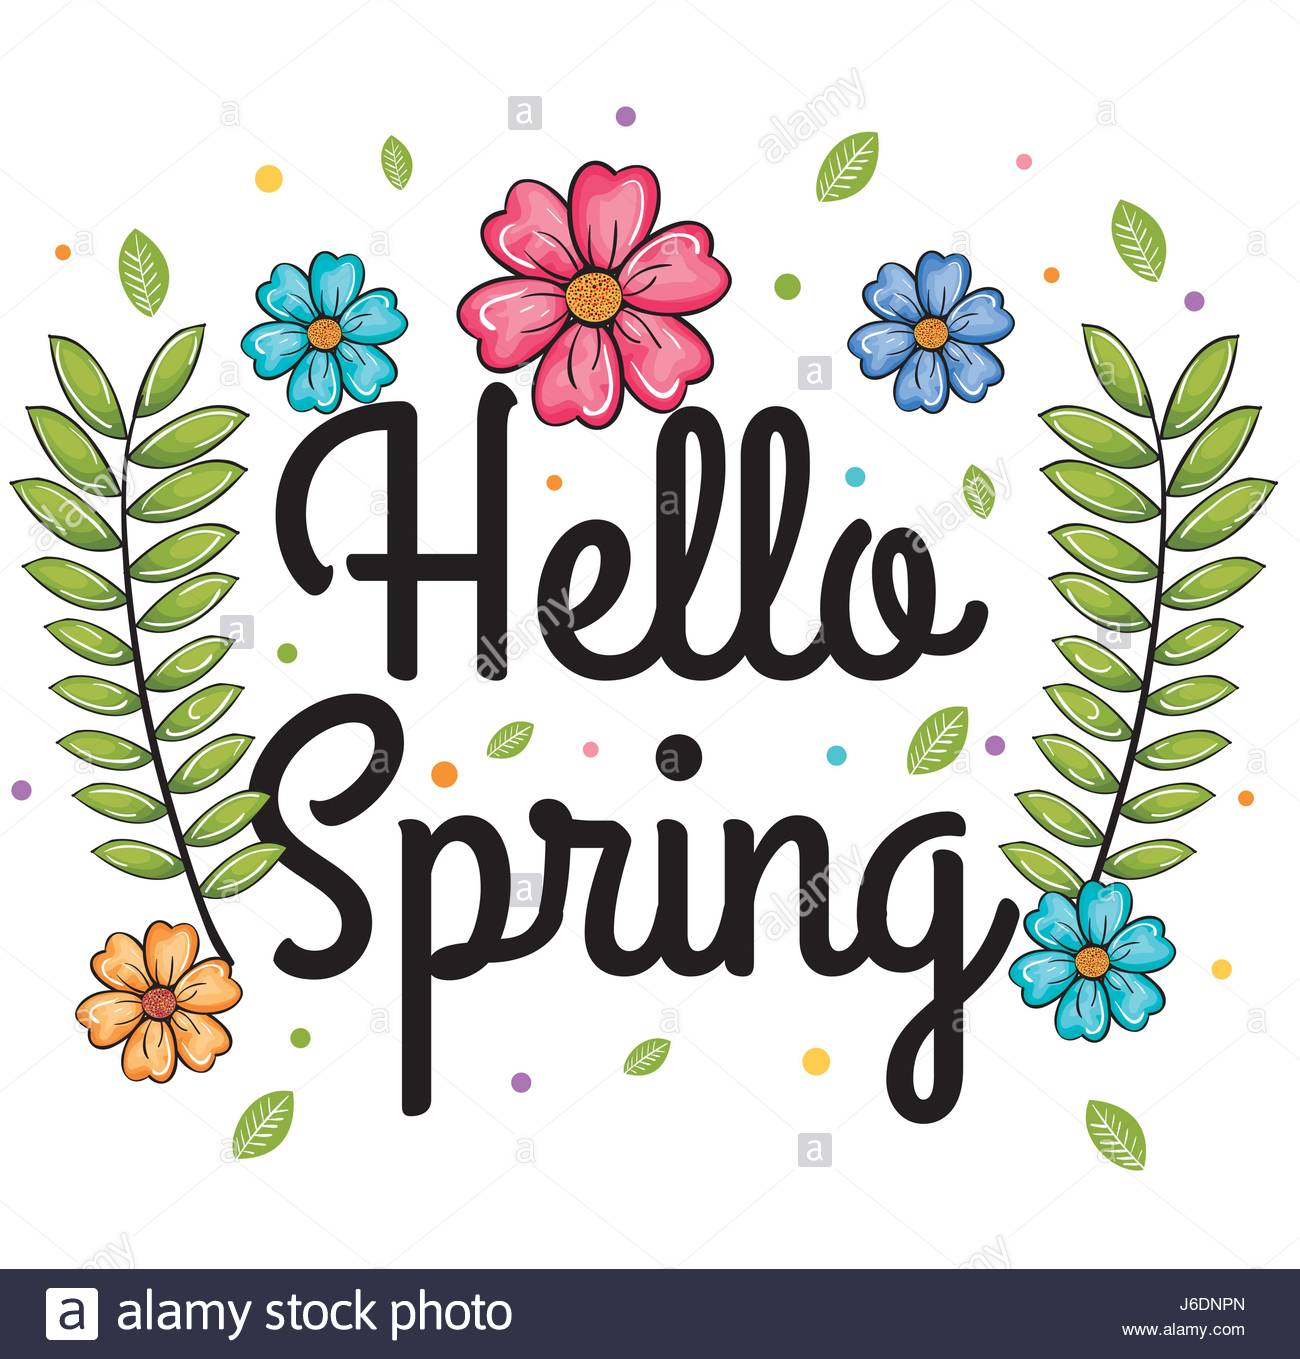 Welcome spring design Stock Vector Art & Illustration, Vector Image.